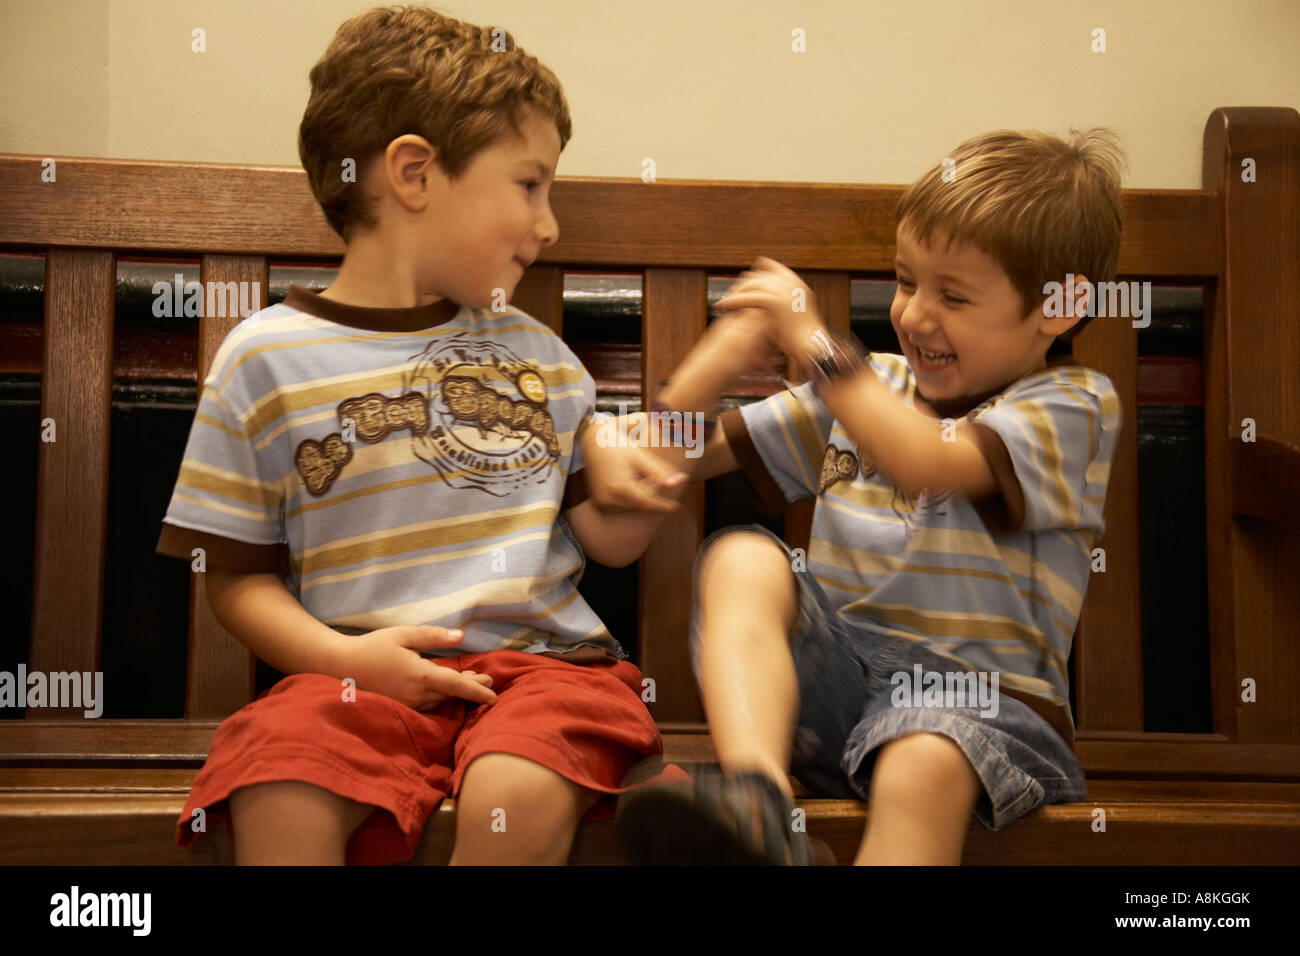 Two Young Boys Children Brothers Wearing Shorts And T Shirts Sitting On A Bench Playing Fighting Laughing NAOH CJWH